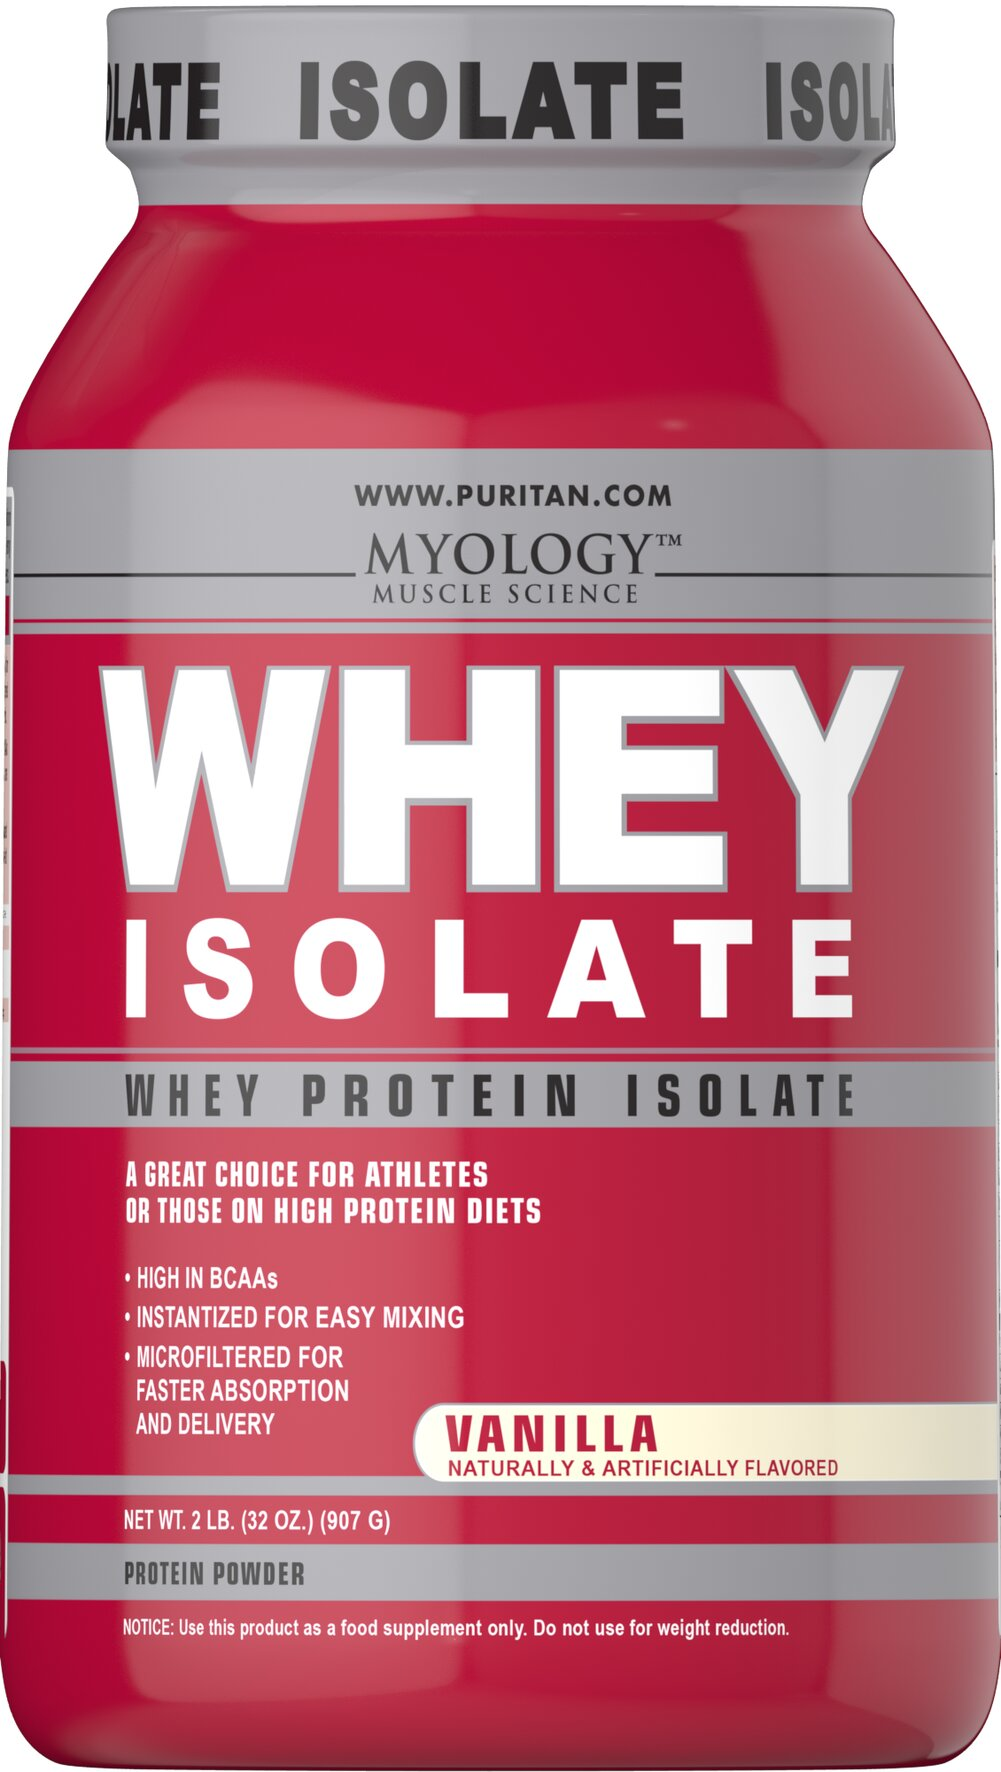 Whey Protein Isolate Vanilla <p>Whey is popular with bodybuilders, people on high protein diets, and anyone looking for a quick, easy-to-use nutritional drink. Our Whey Isolate Powder is specifically designed for anyone looking for the highest quality nutrition to support their workout and fitness goals</p>.  <p>Whey is a natural by-product of milk, and is loaded with strength-building protein, which plays a role in optimal nutrition.** Whey Isolate contains more Branched Chain